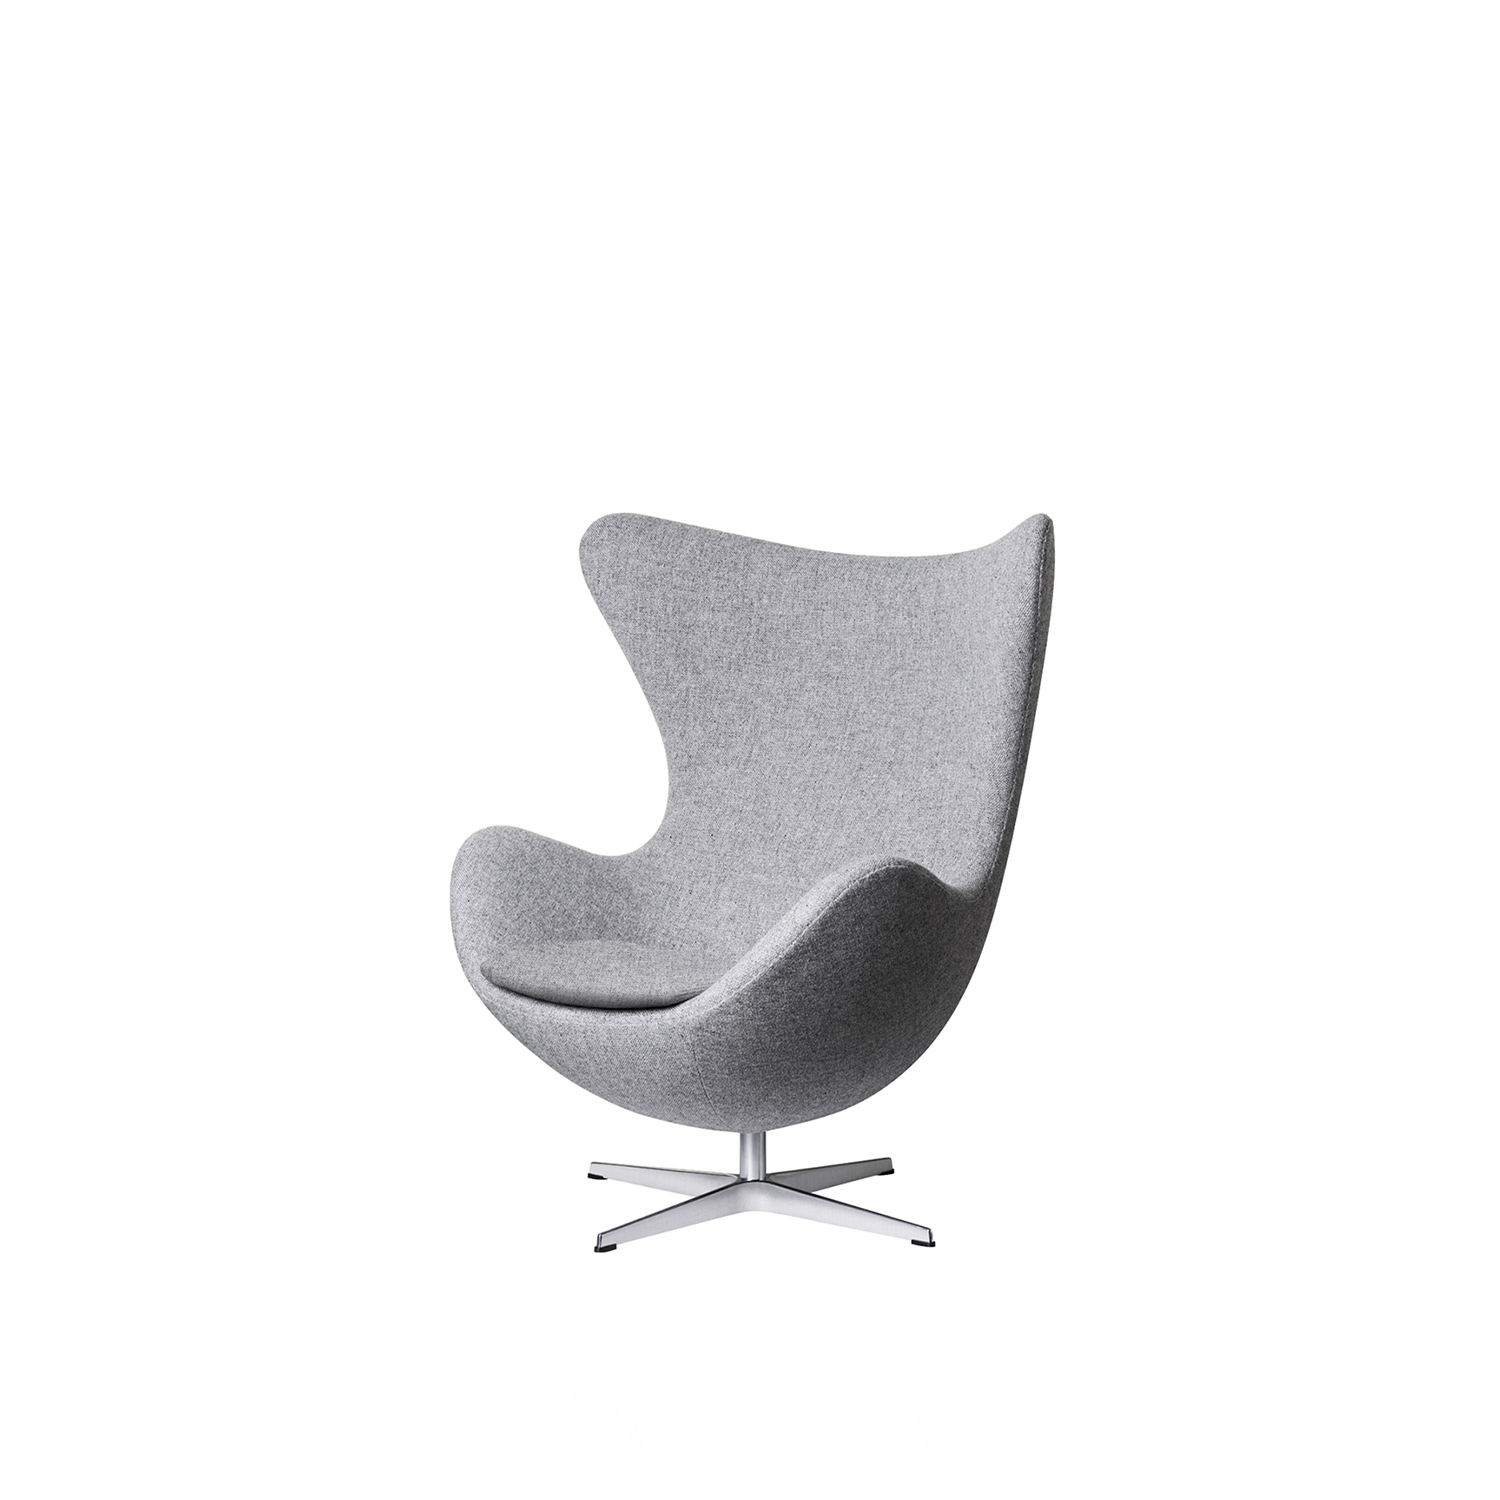 Egg Lounge Chair - Experience originality and timeless design with the Egg in fabric and indulge in its sculptural curves that will last for generations. When Arne Jacobsen in the end of the 1950s designed the SAS Royal Hotel in Copenhagen, he too created the Egg, the Swan, the Swan Sofa, the Series 3300 and the Drop.